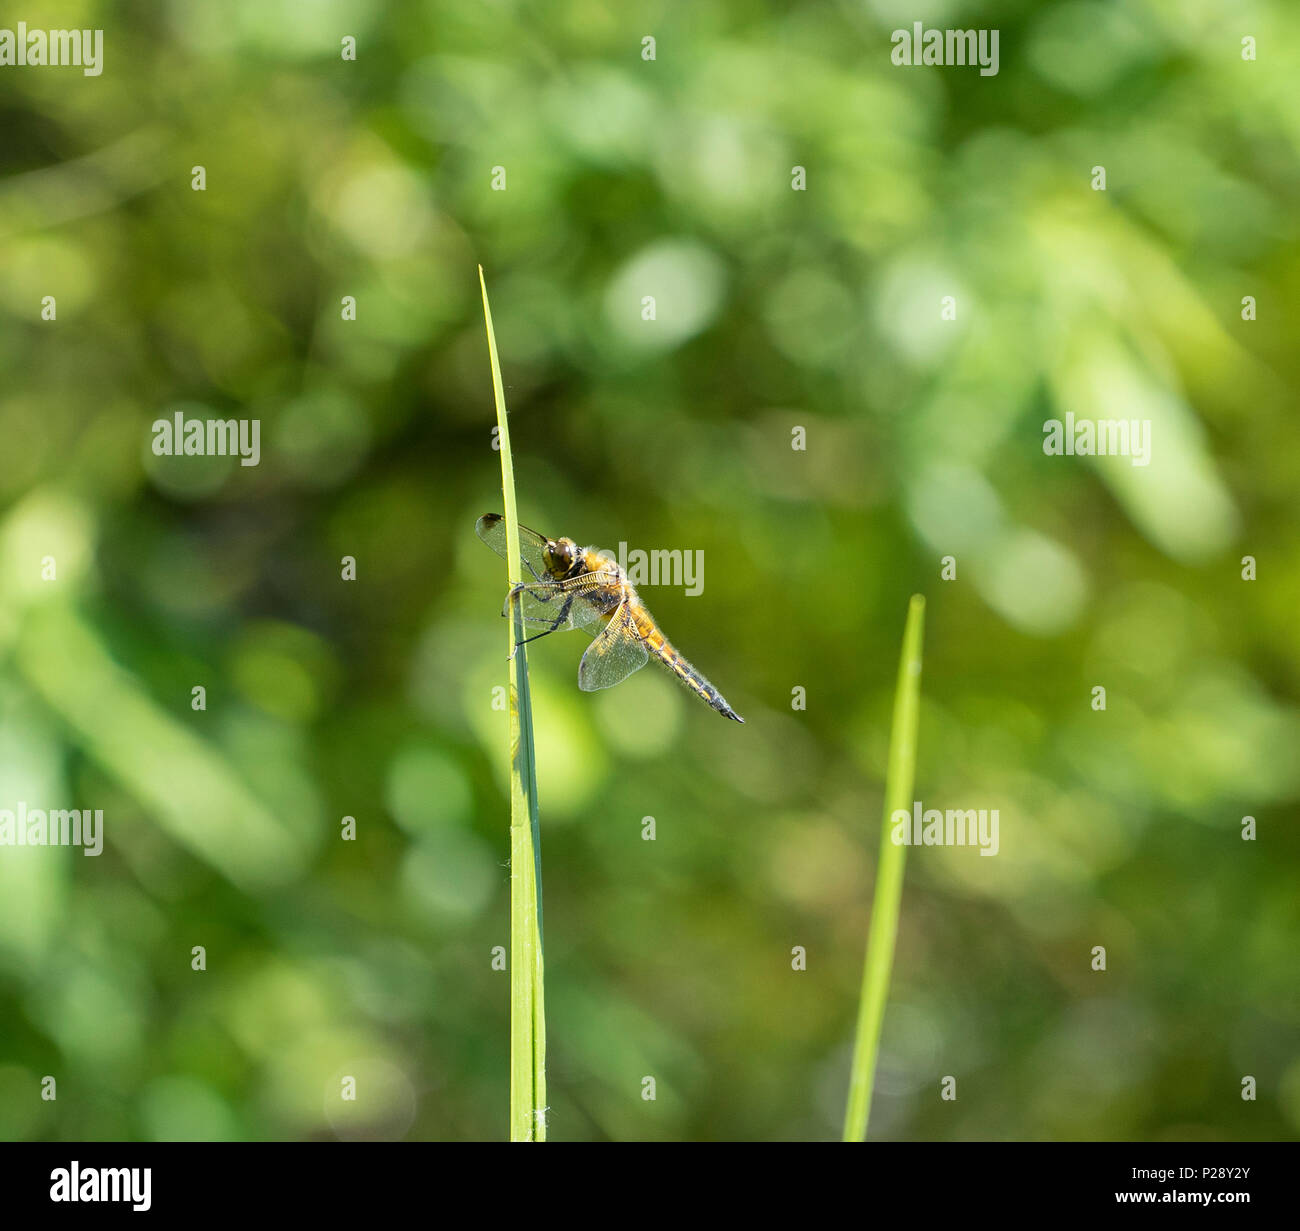 insectdragonfly-on-flag-iris-leaf-P28Y2Y